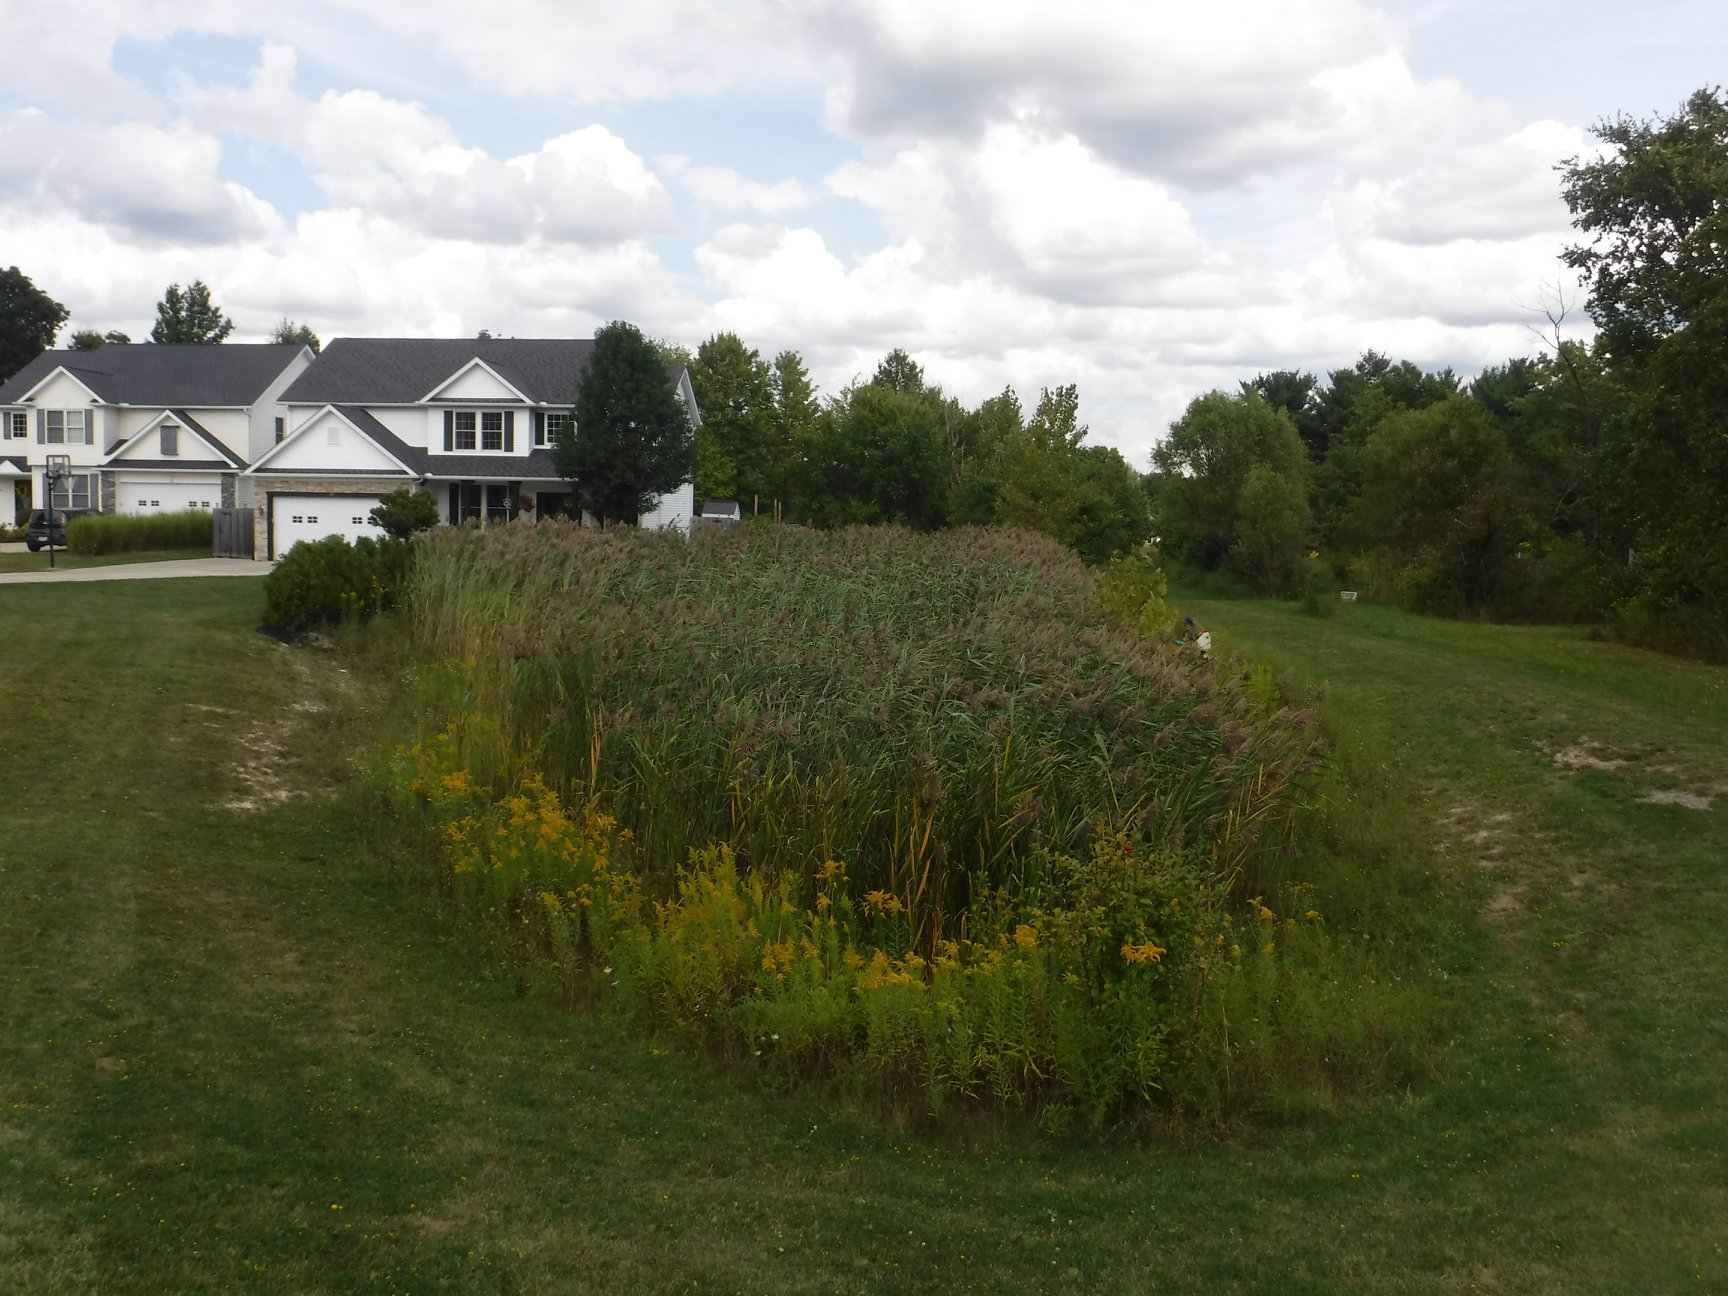 Pond services can help remove cattails